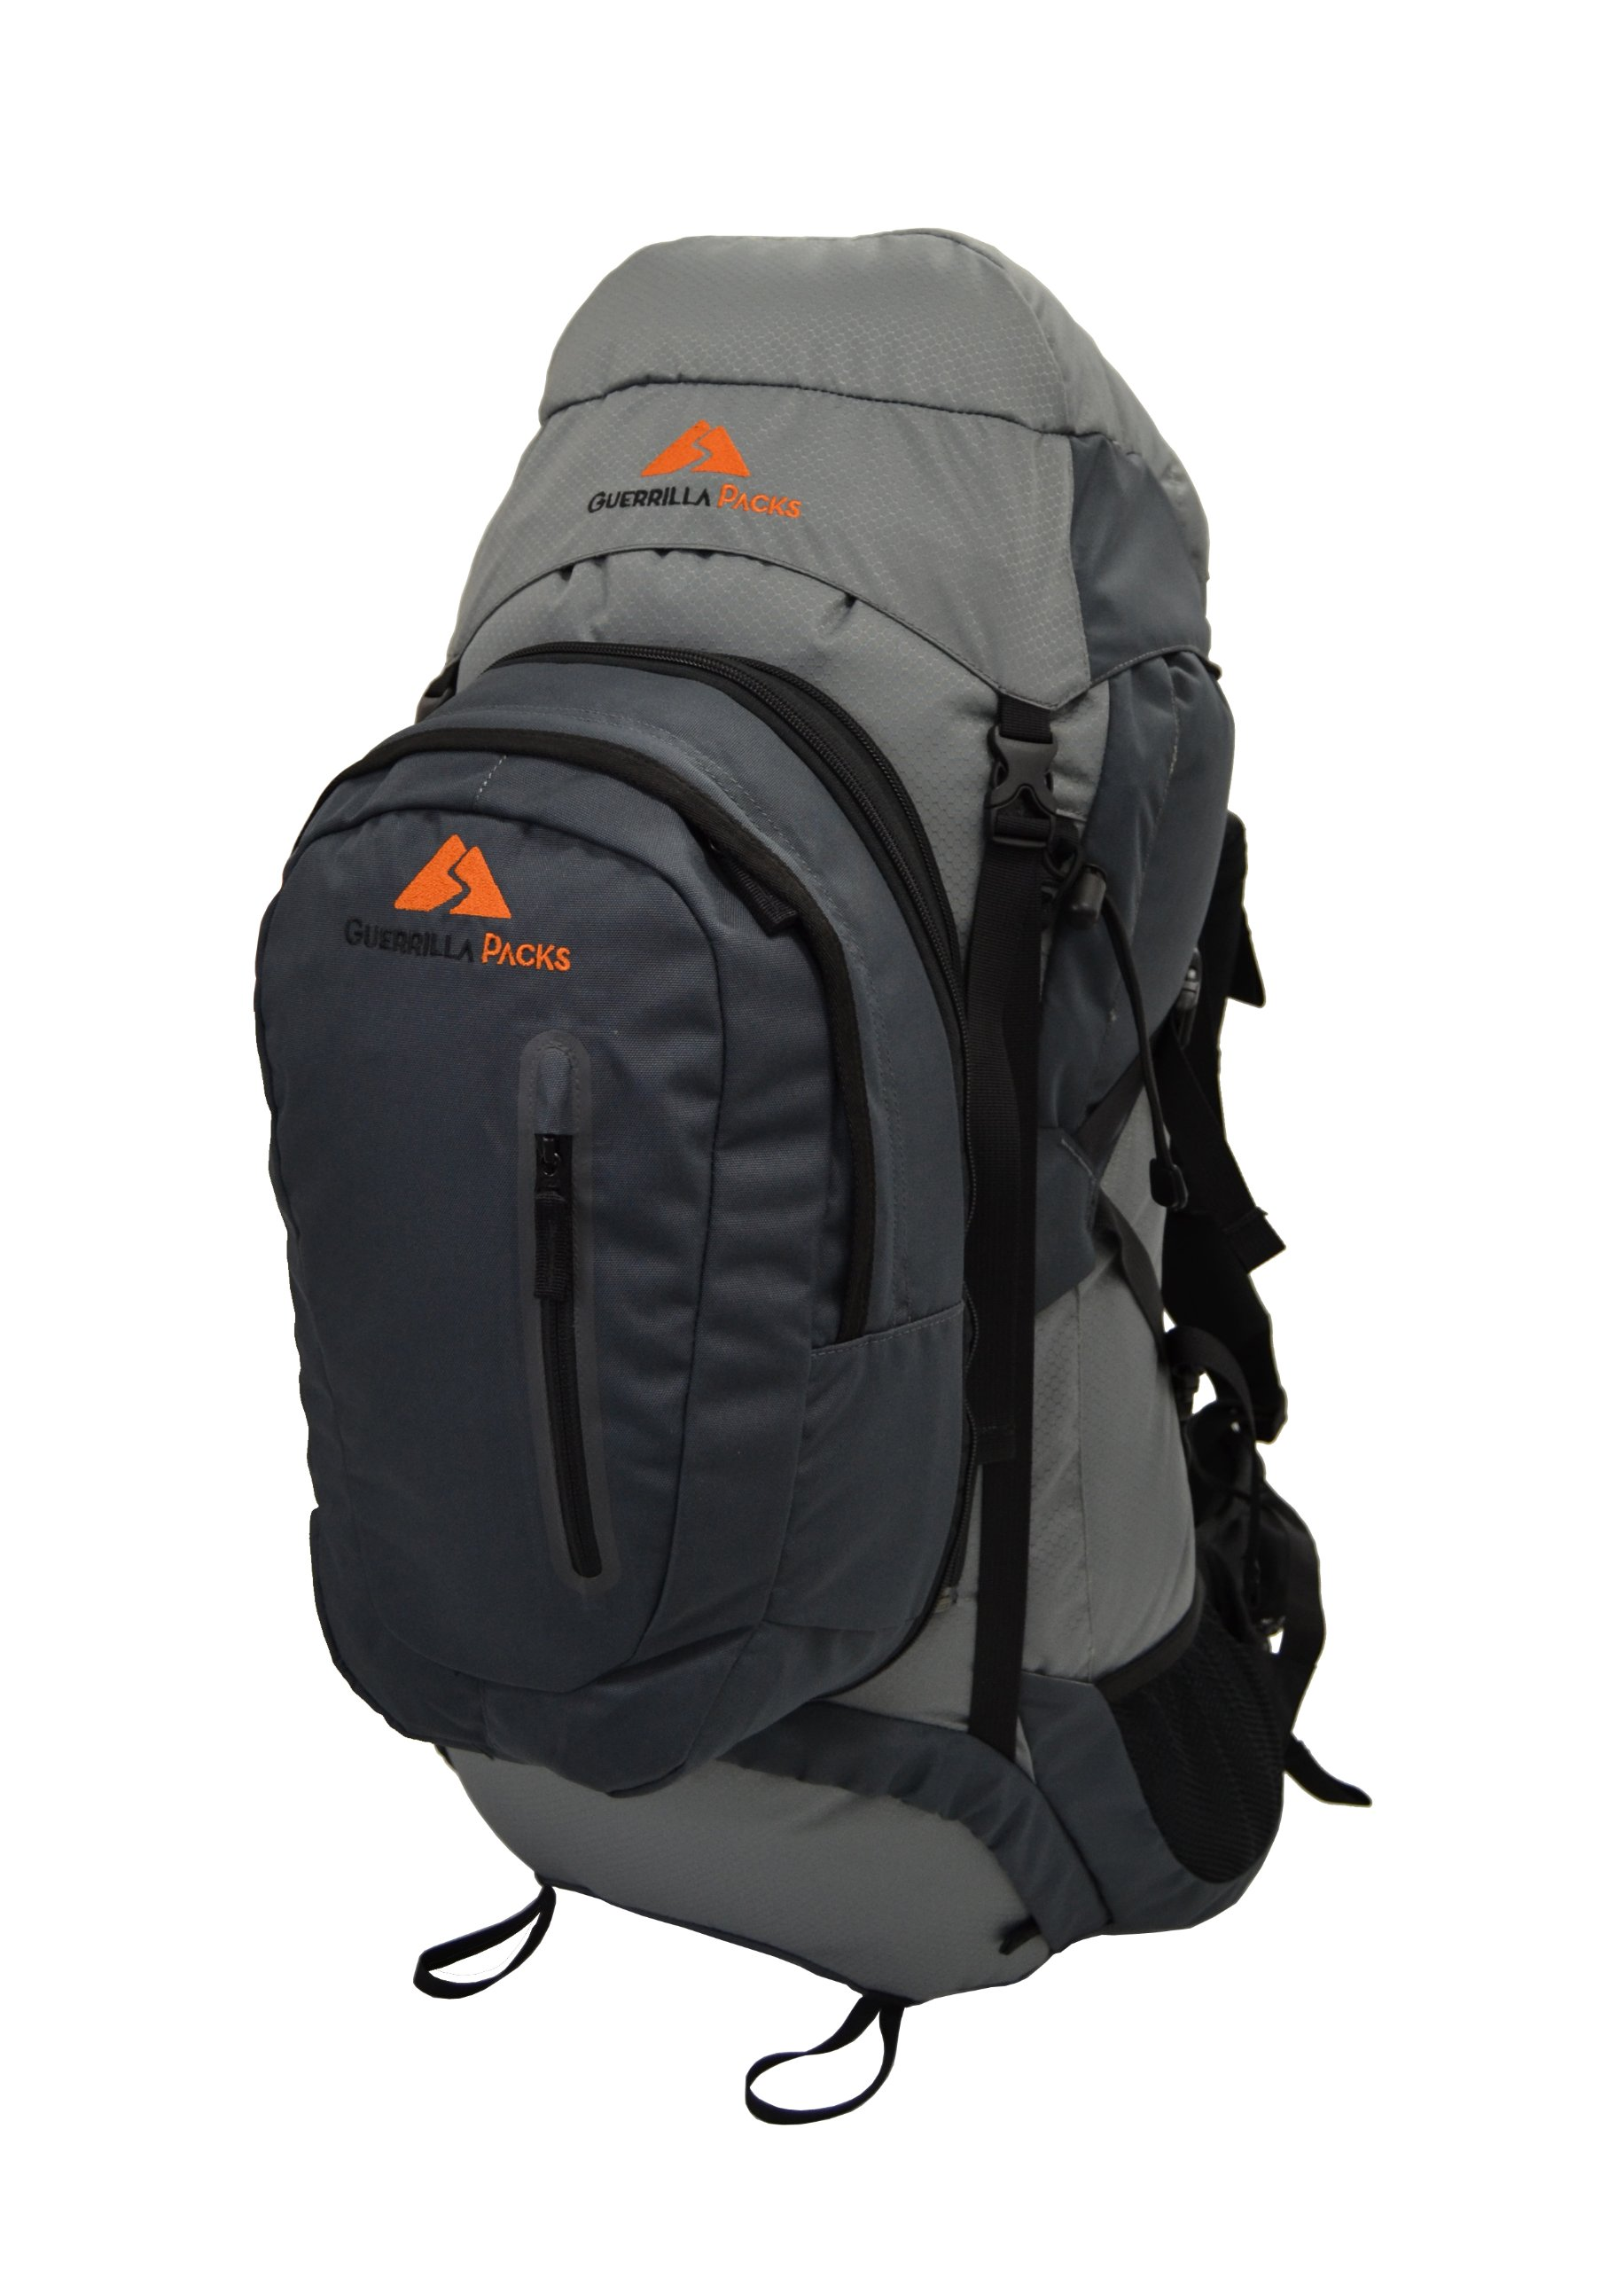 Guerrilla Packs Roundhouse Internal Frame Backpack, Middle Grey/Dark Grey by Guerrilla Packs (Image #1)